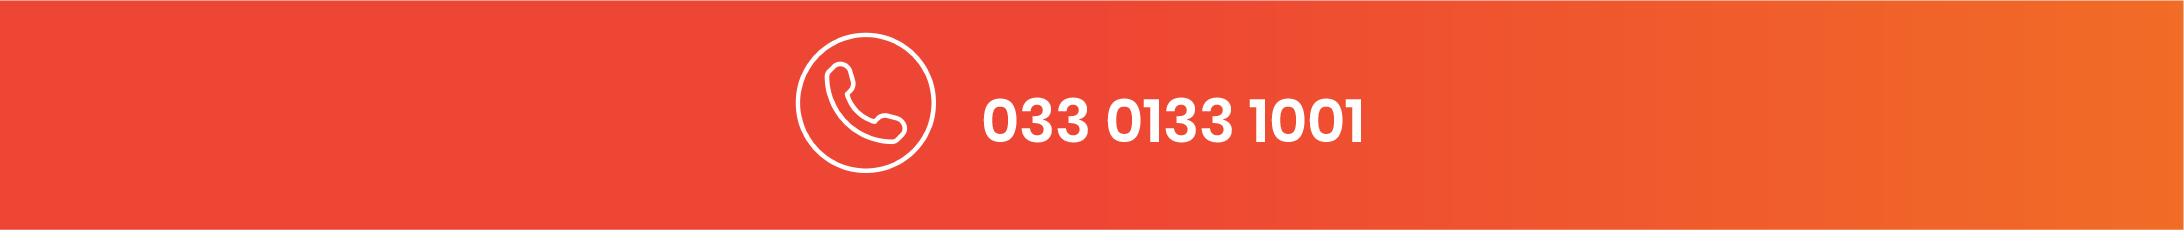 call footer-22